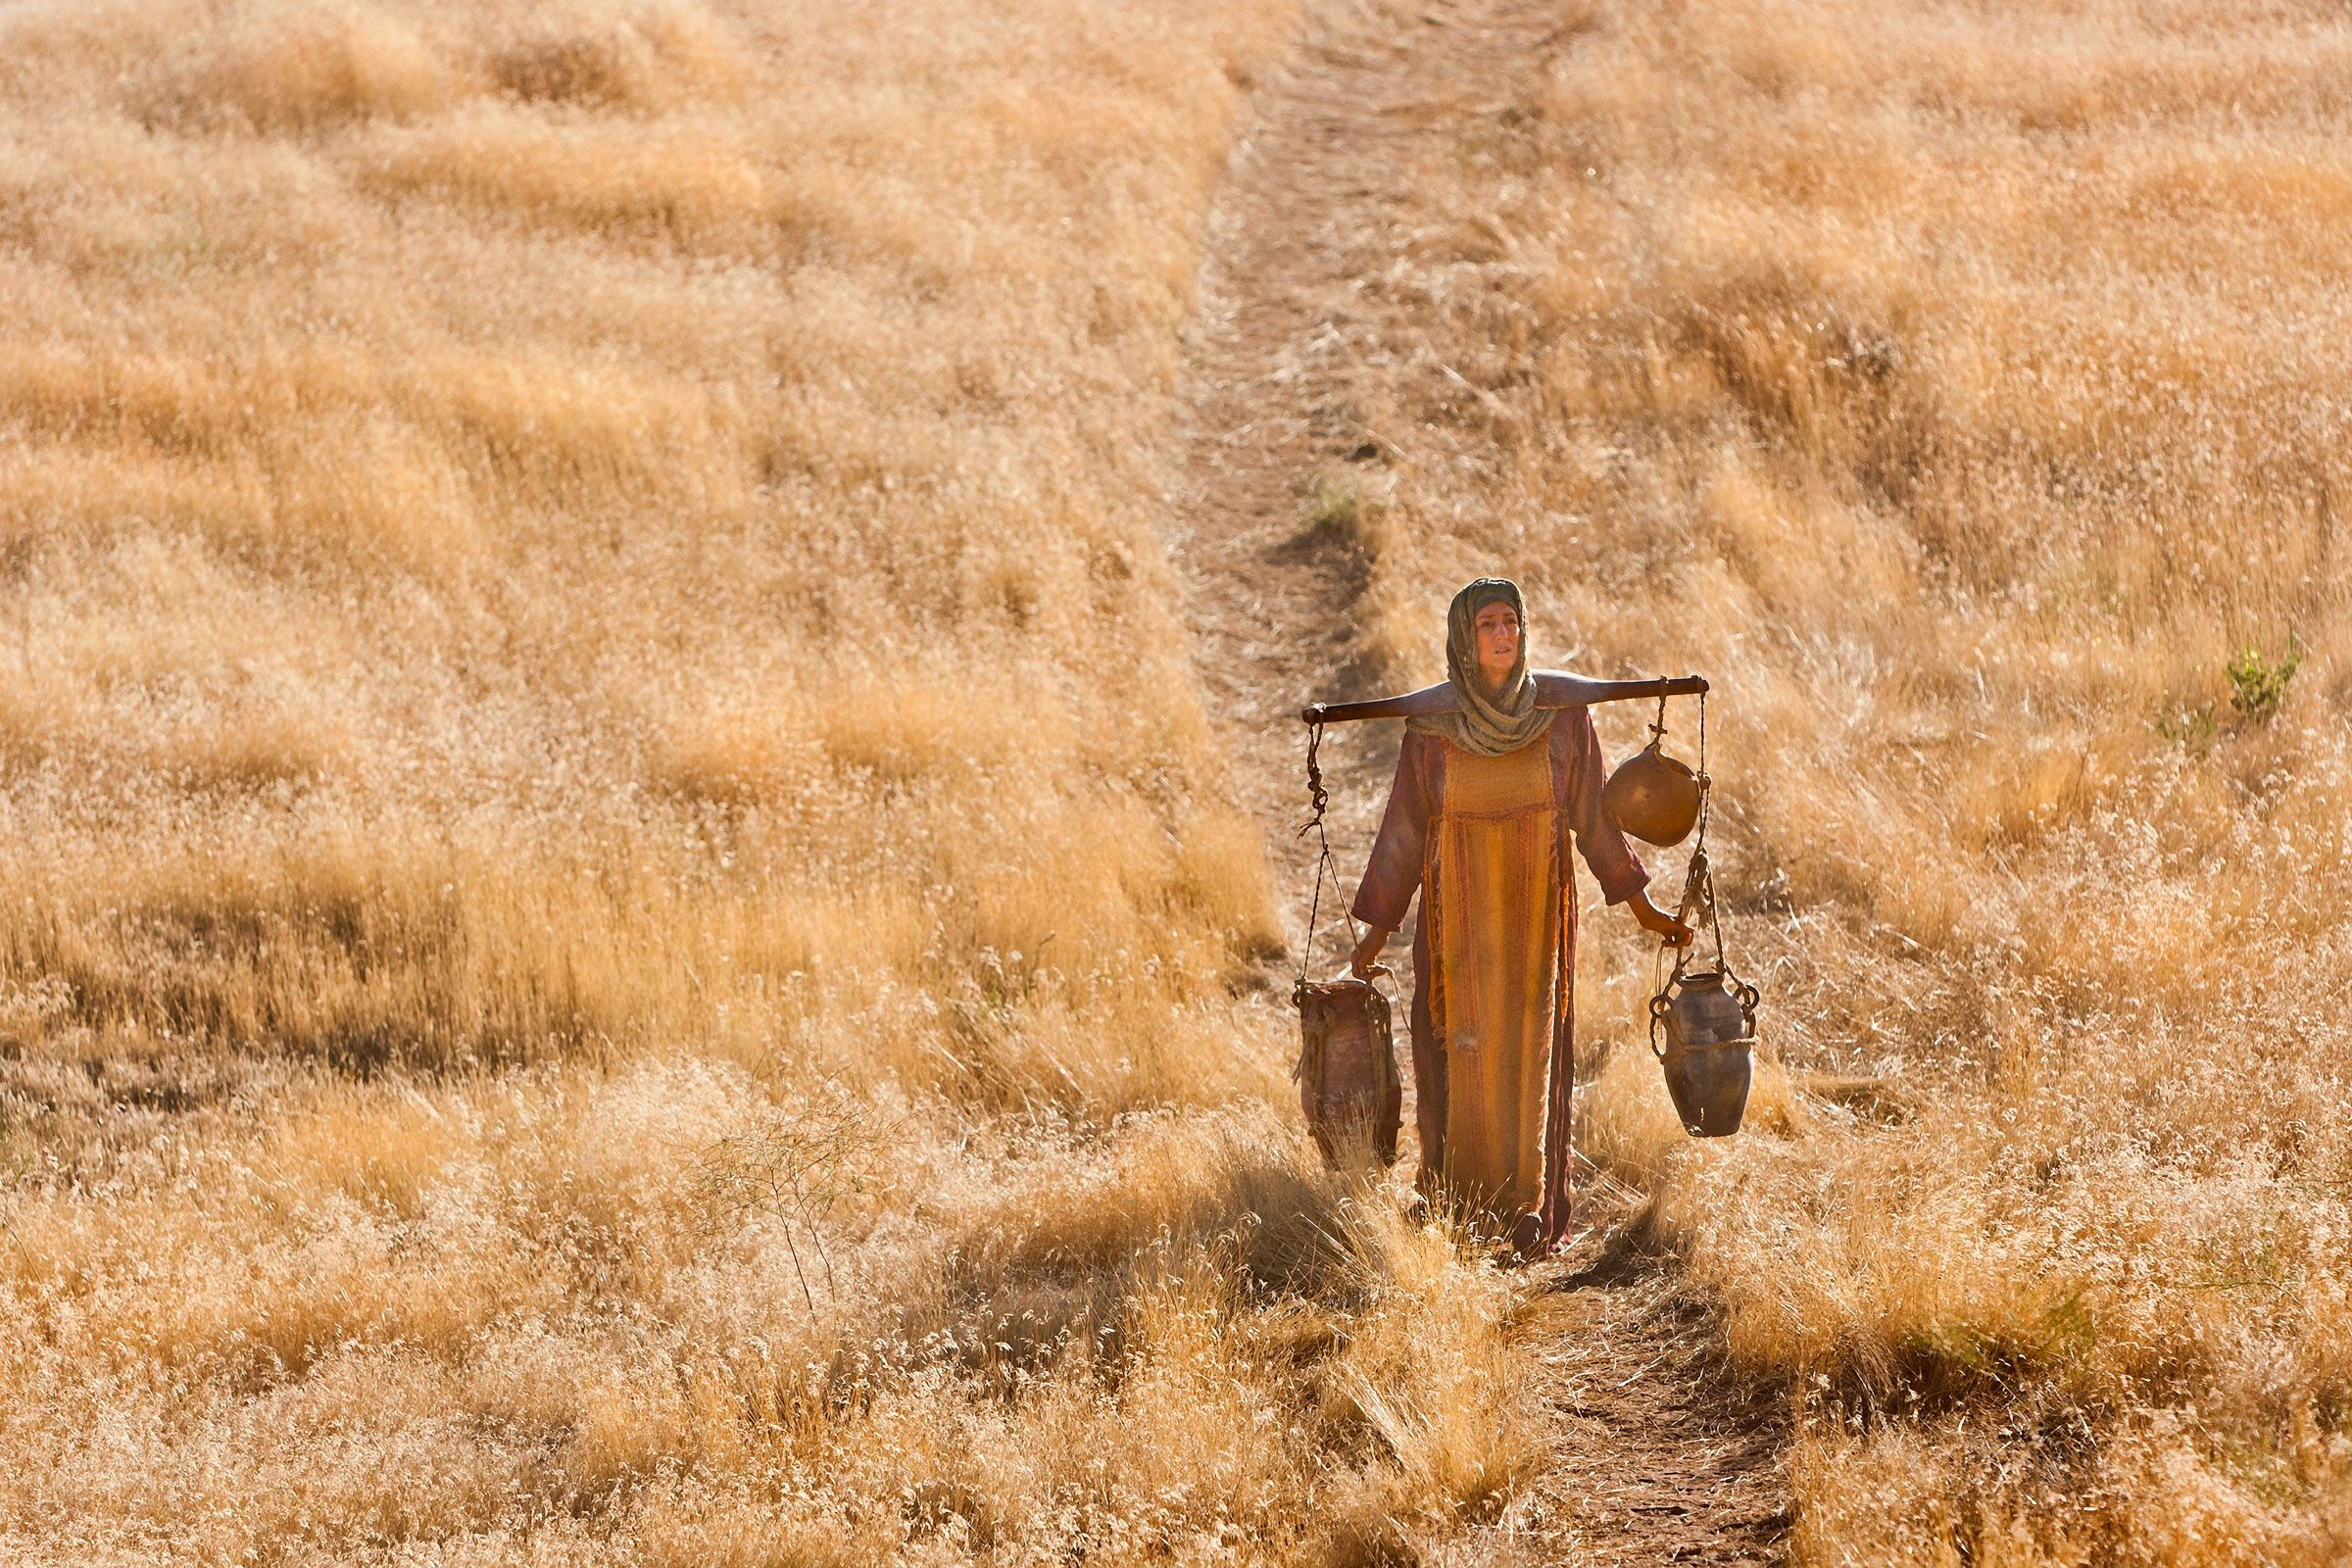 The Samaritan woman carries water from the well after learning from Jesus.